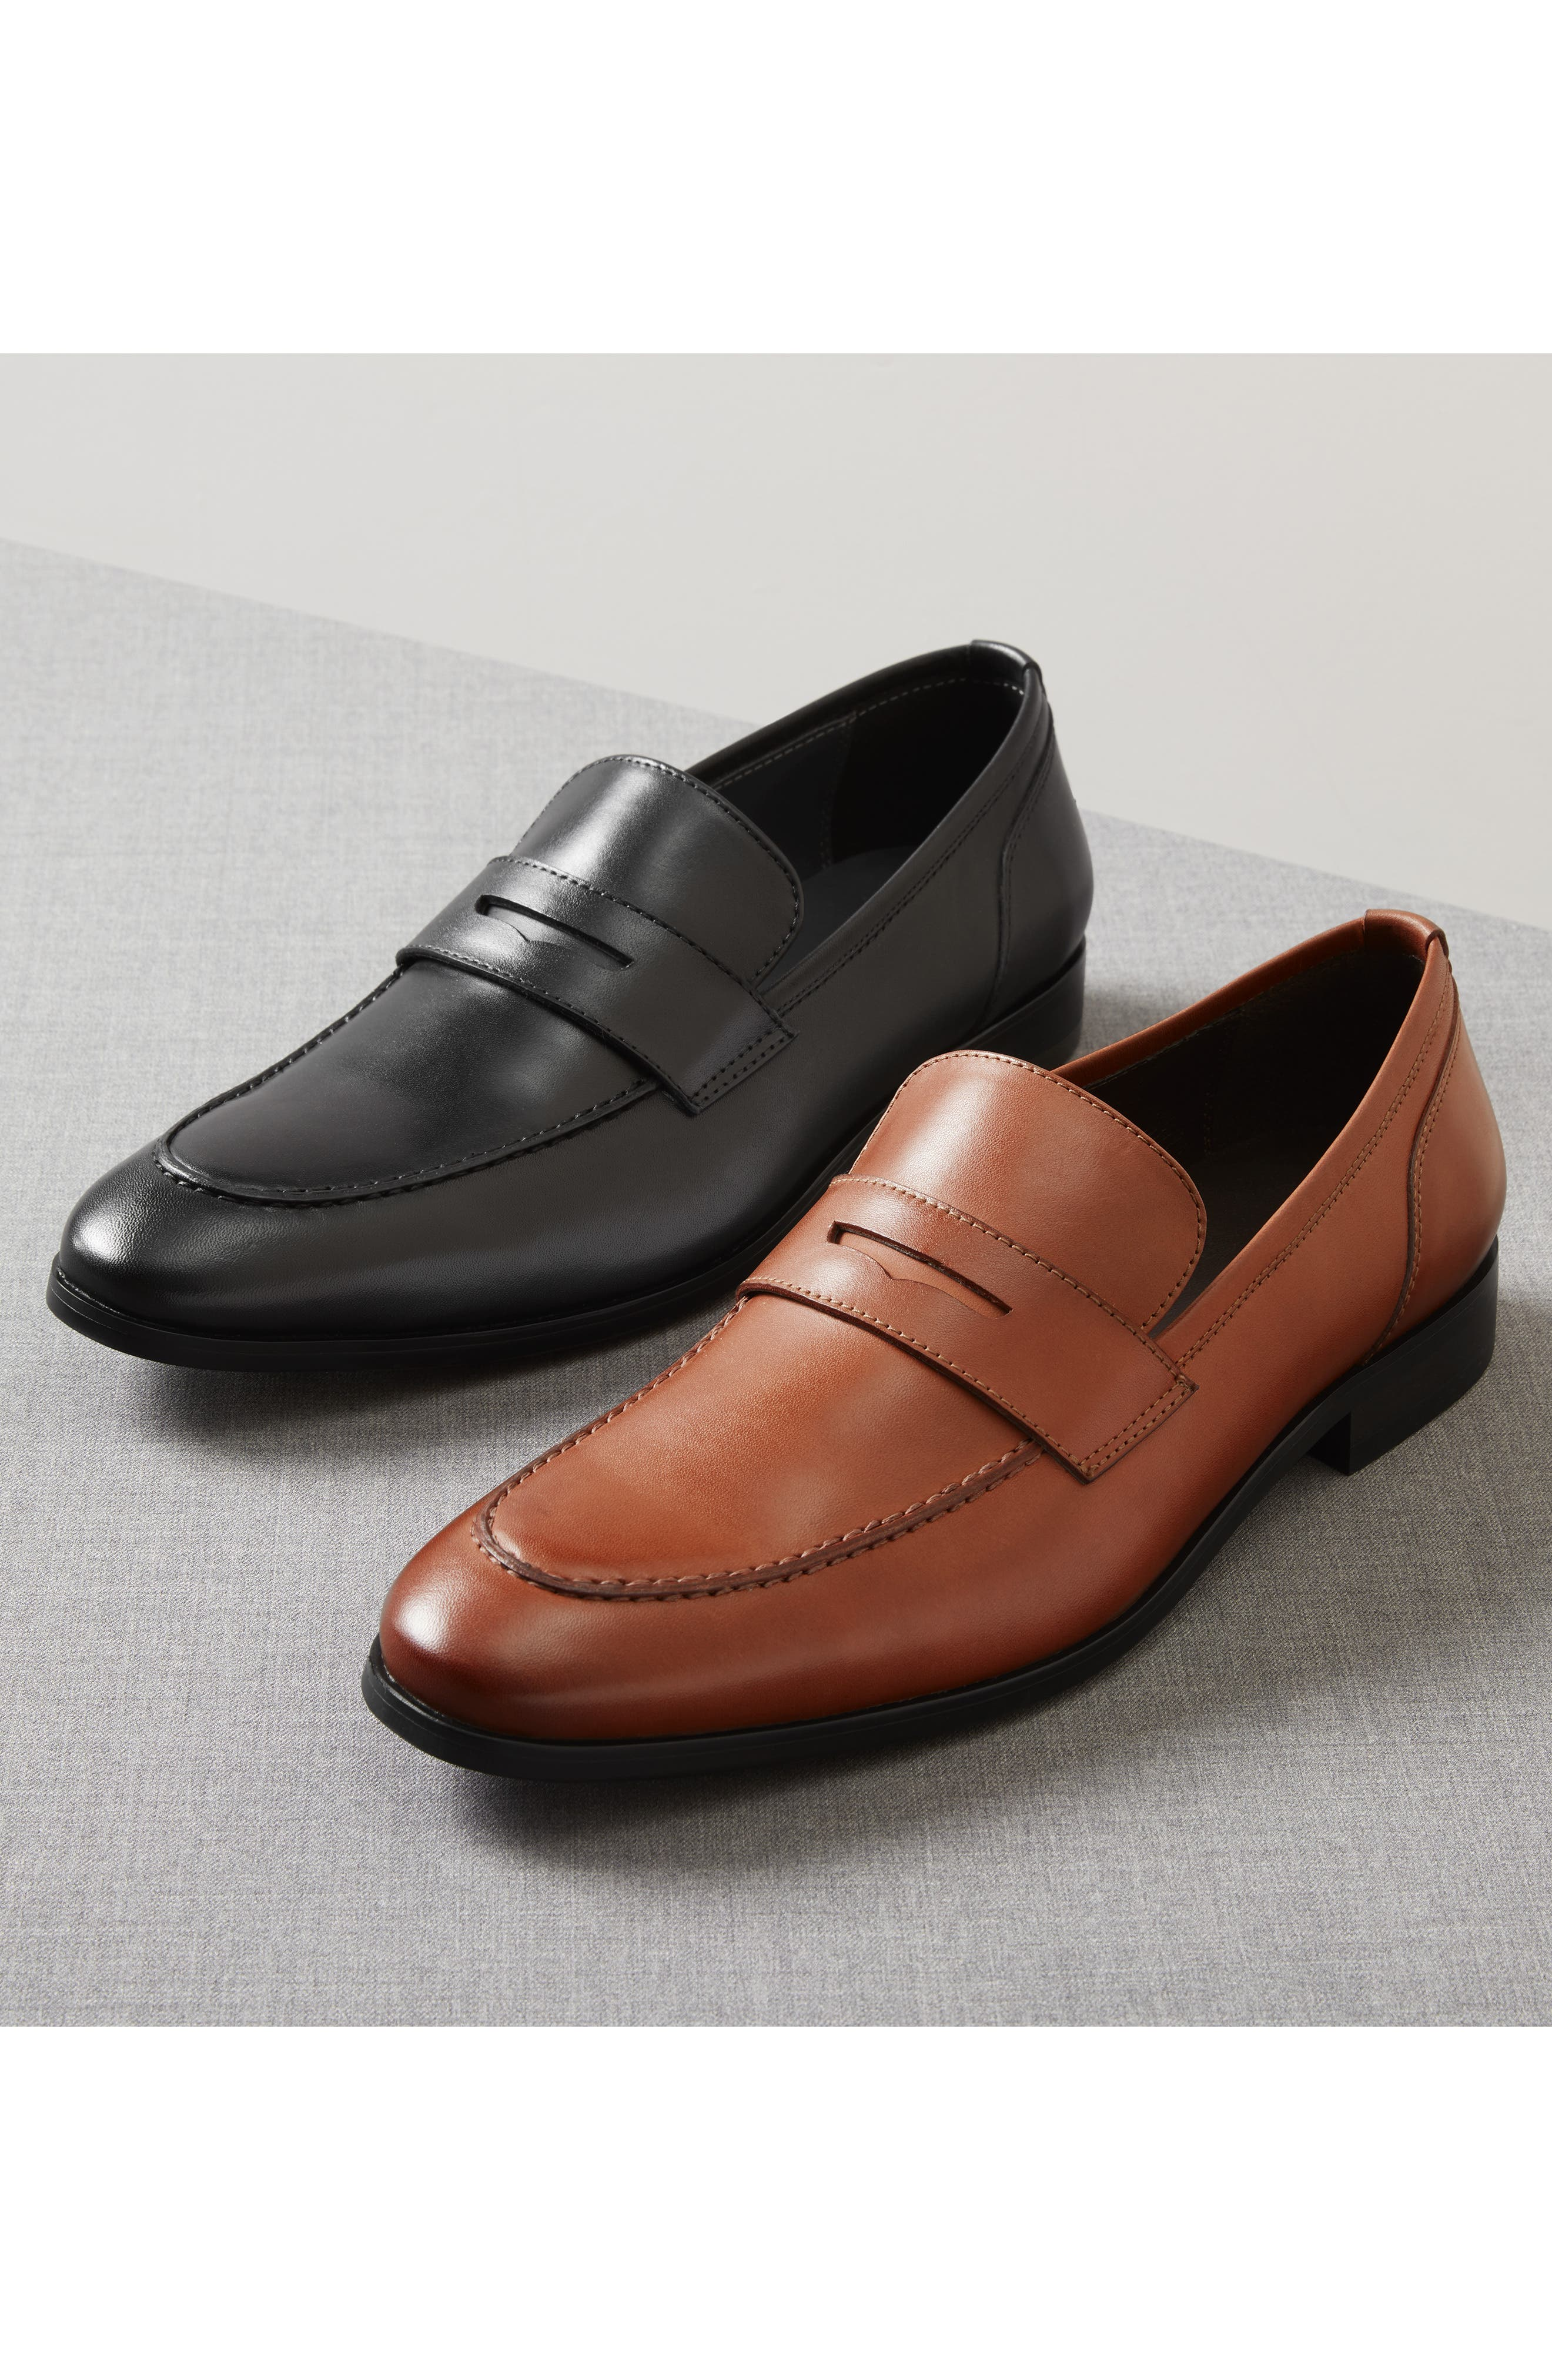 Denio Apron Toe Penny Loafer,                             Alternate thumbnail 7, color,                             BLACK LEATHER